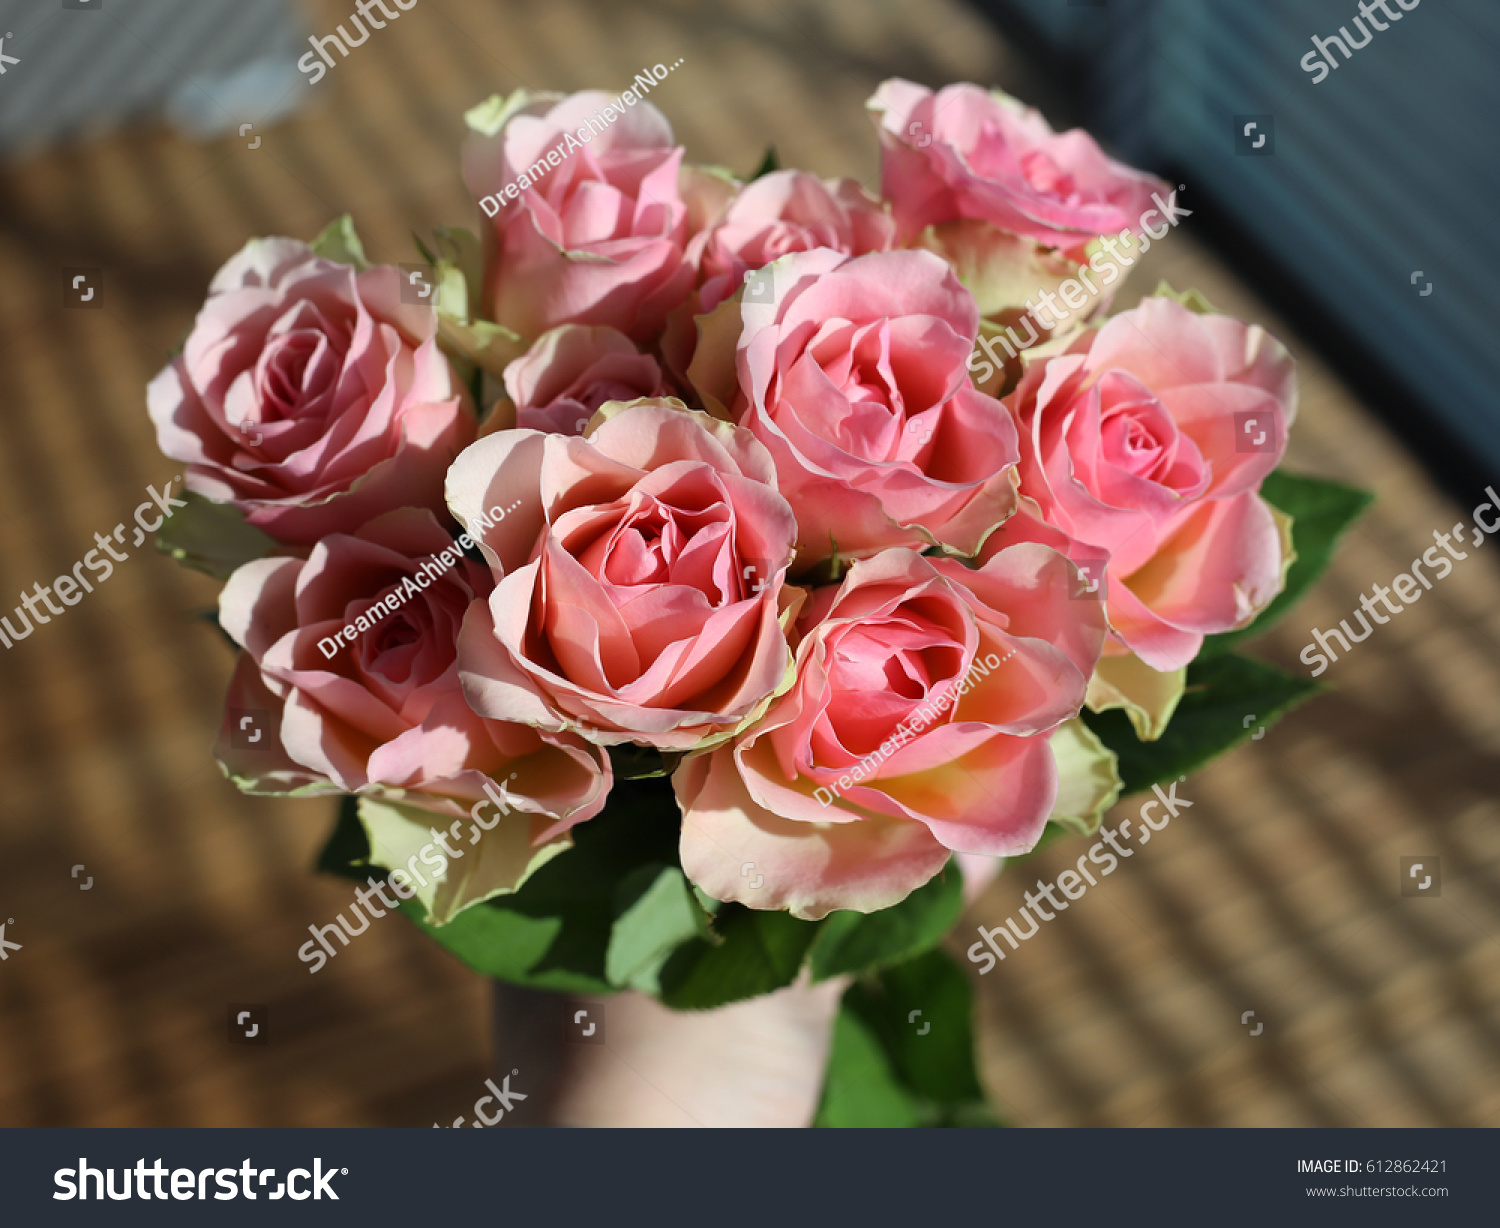 Beautiful Light Pink Roses Reminds Me Stock Photo Safe To Use